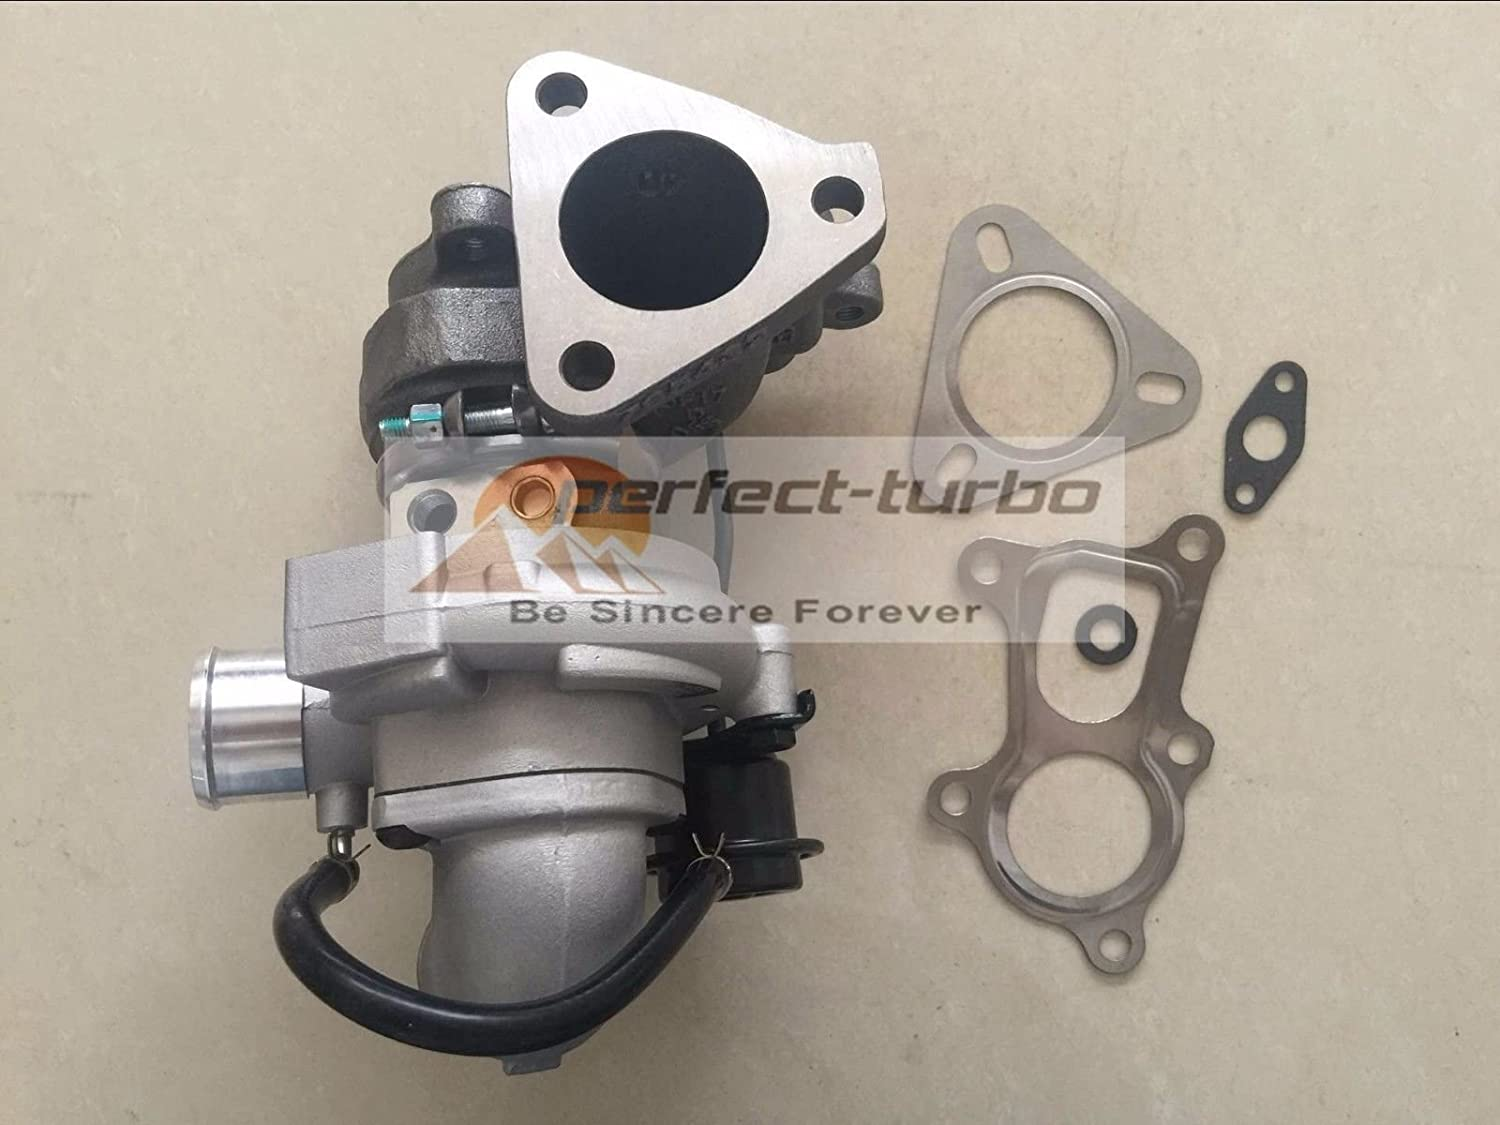 Amazon.com: TF035 49135-04300 Turbo For HYUNDAI Commercial Starex H1 D4BH 4D56 A-1 2.5L TD: Automotive